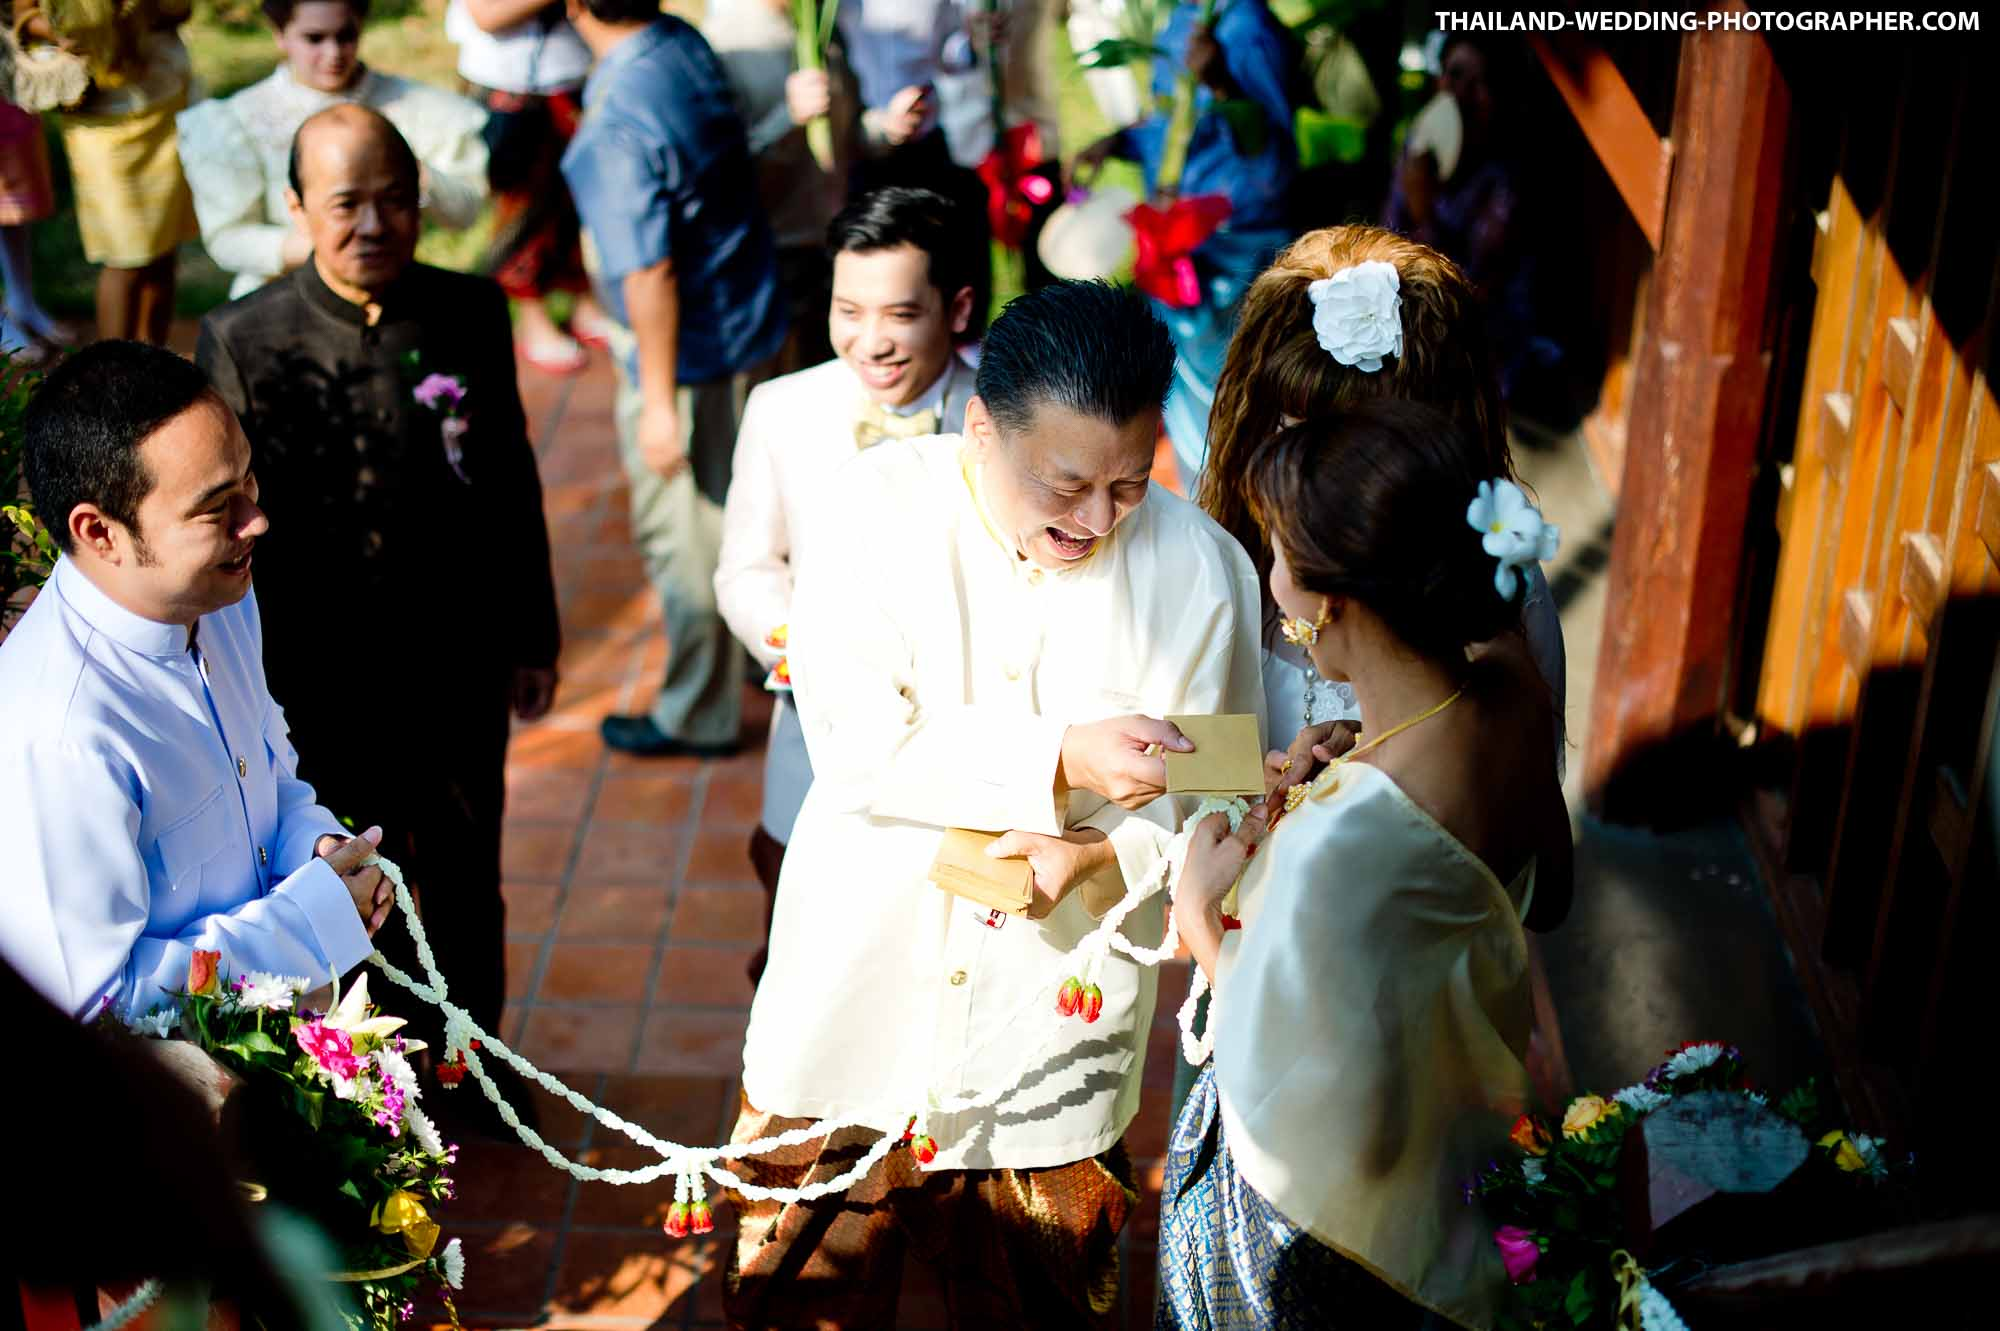 Dhabkwan Resort & Spa Nonthaburi Thailand Wedding Photography